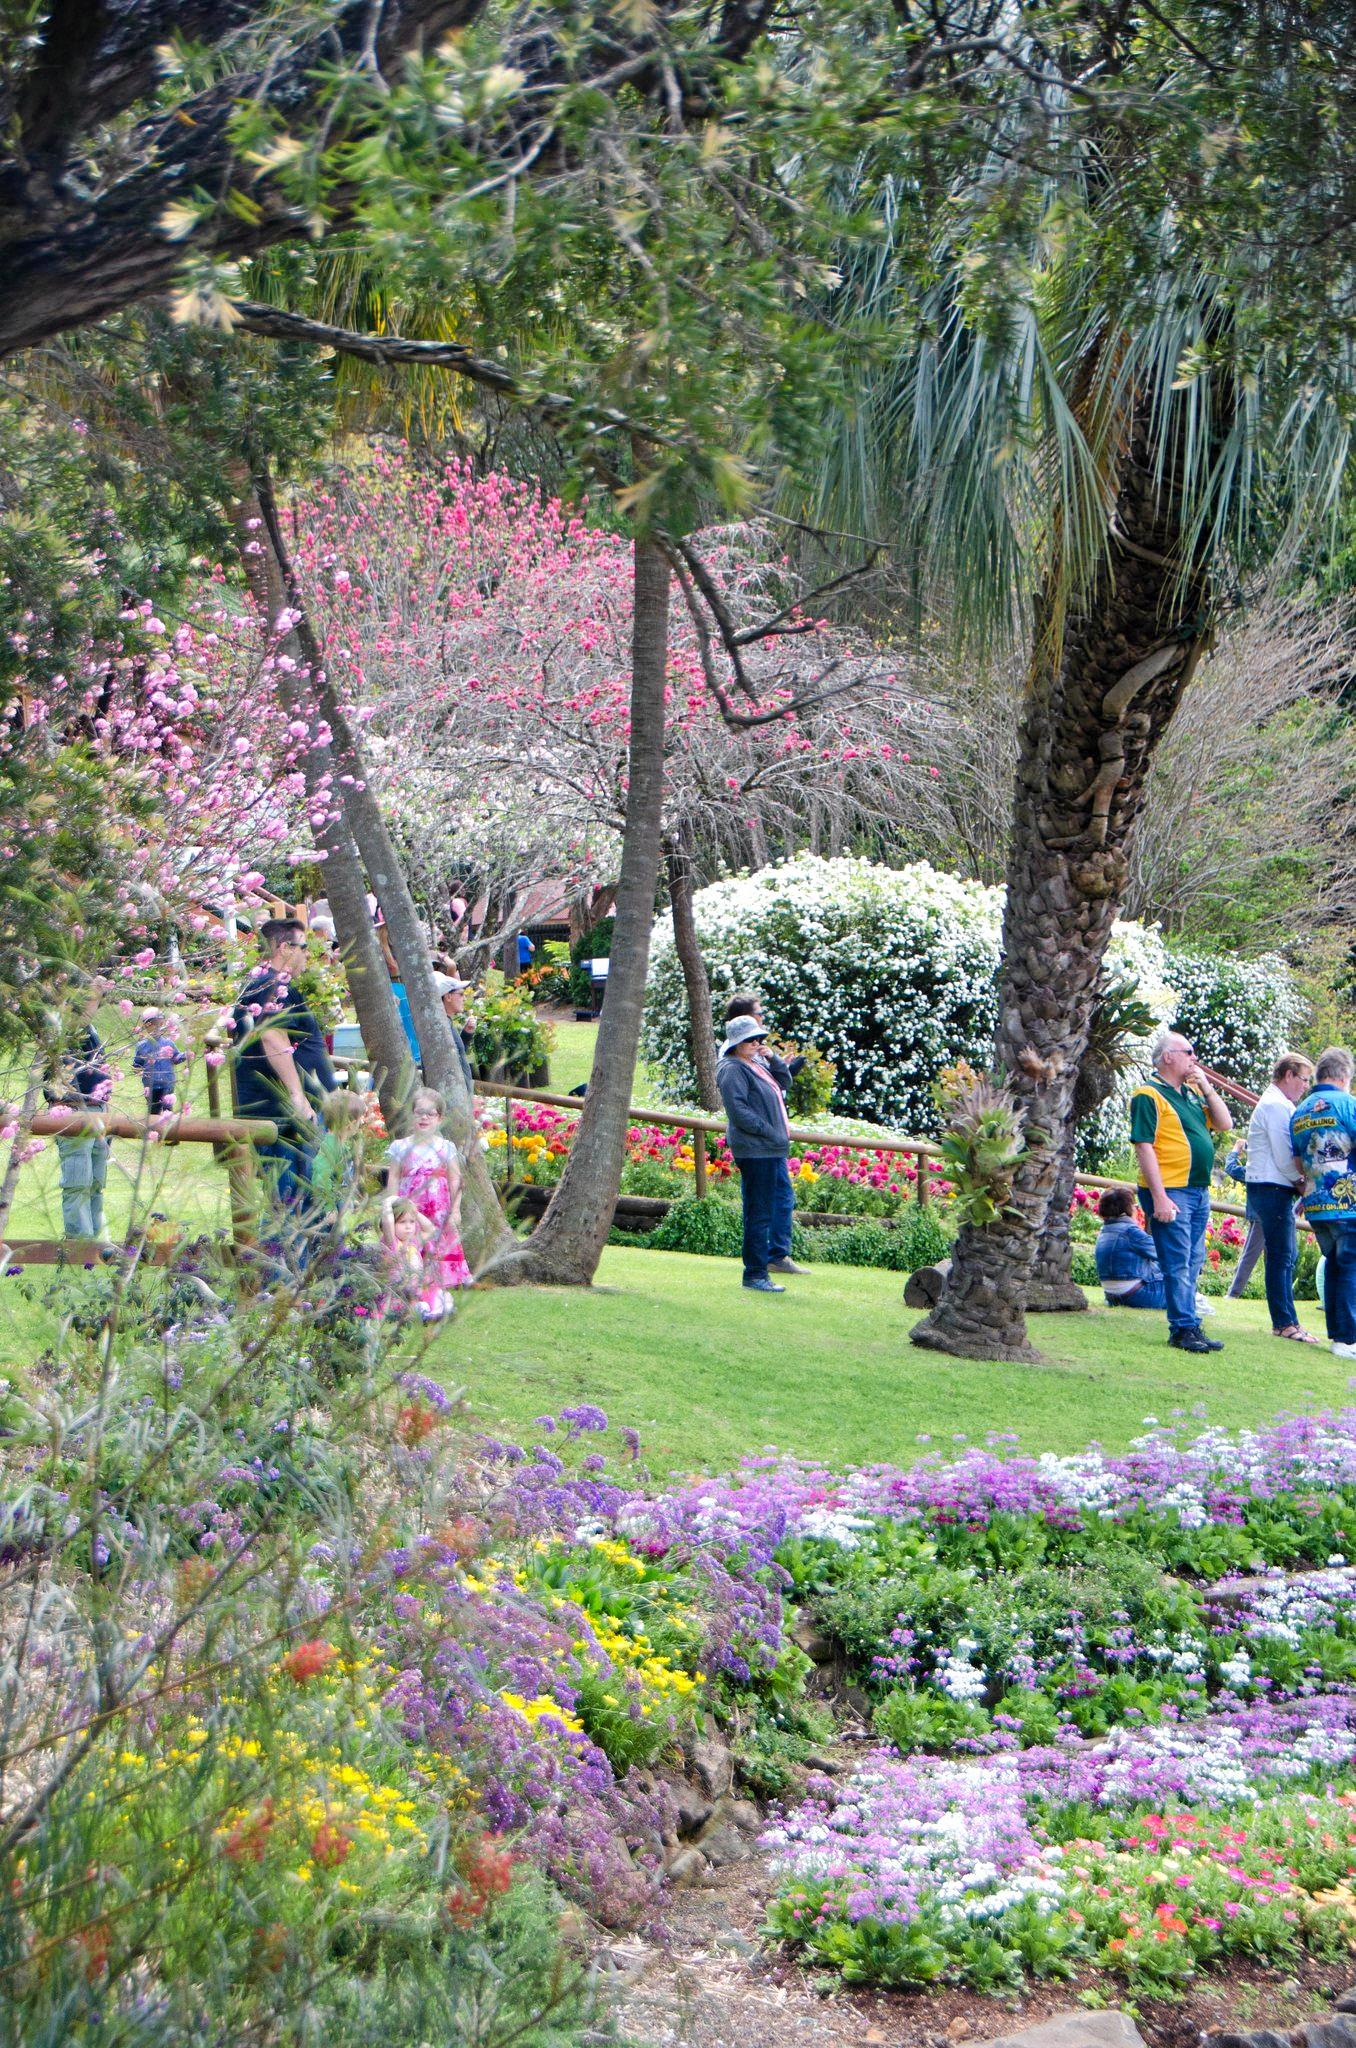 ALL ABOARD: Thousands of visitors each September enjoy the magnificent display of poppies, snapdragons, petunias and more in the beautifully landscaped Spring Bluff Railway Station gardens.